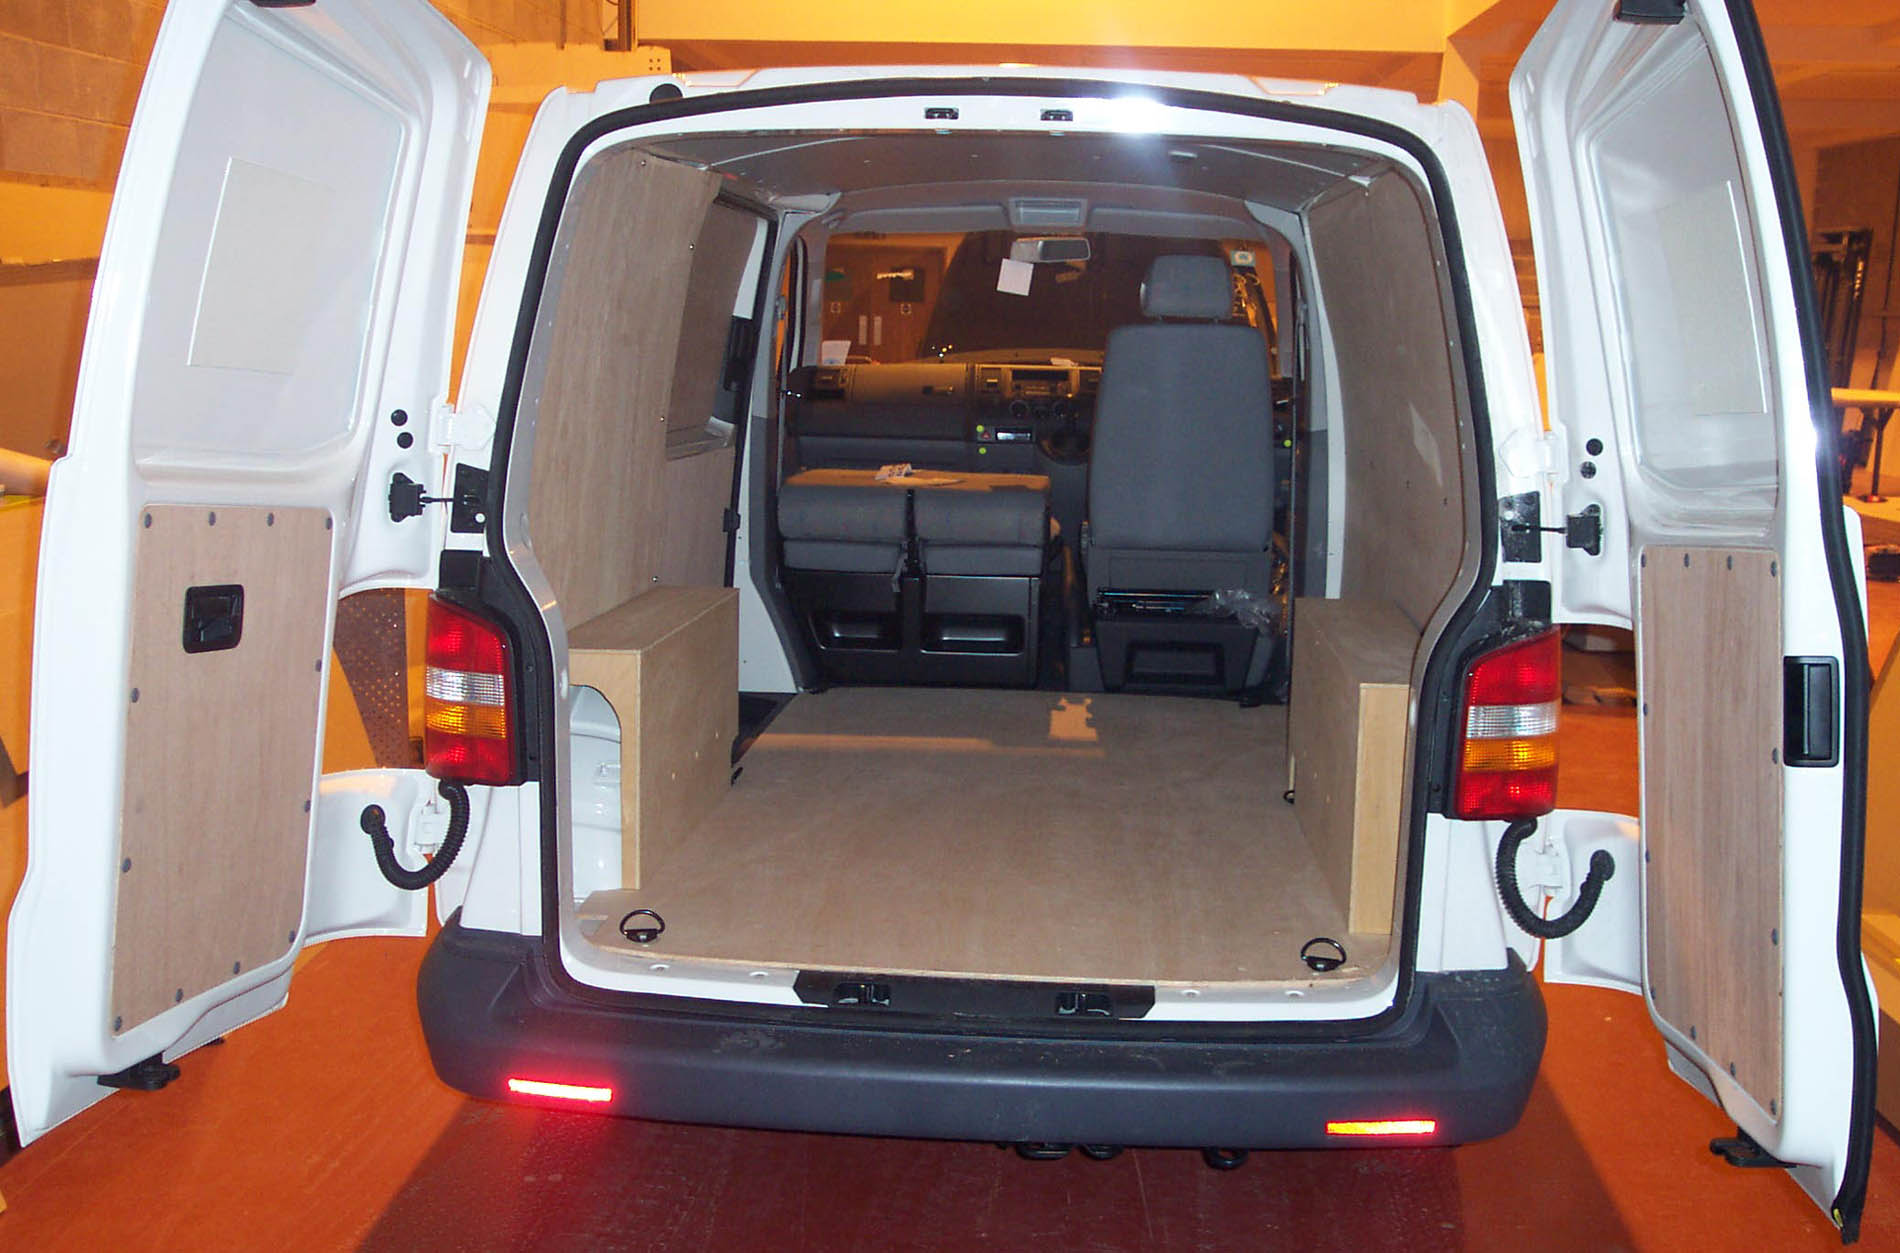 Vw t5 long wheel base transporter van ply lining kit for Van ply lining templates